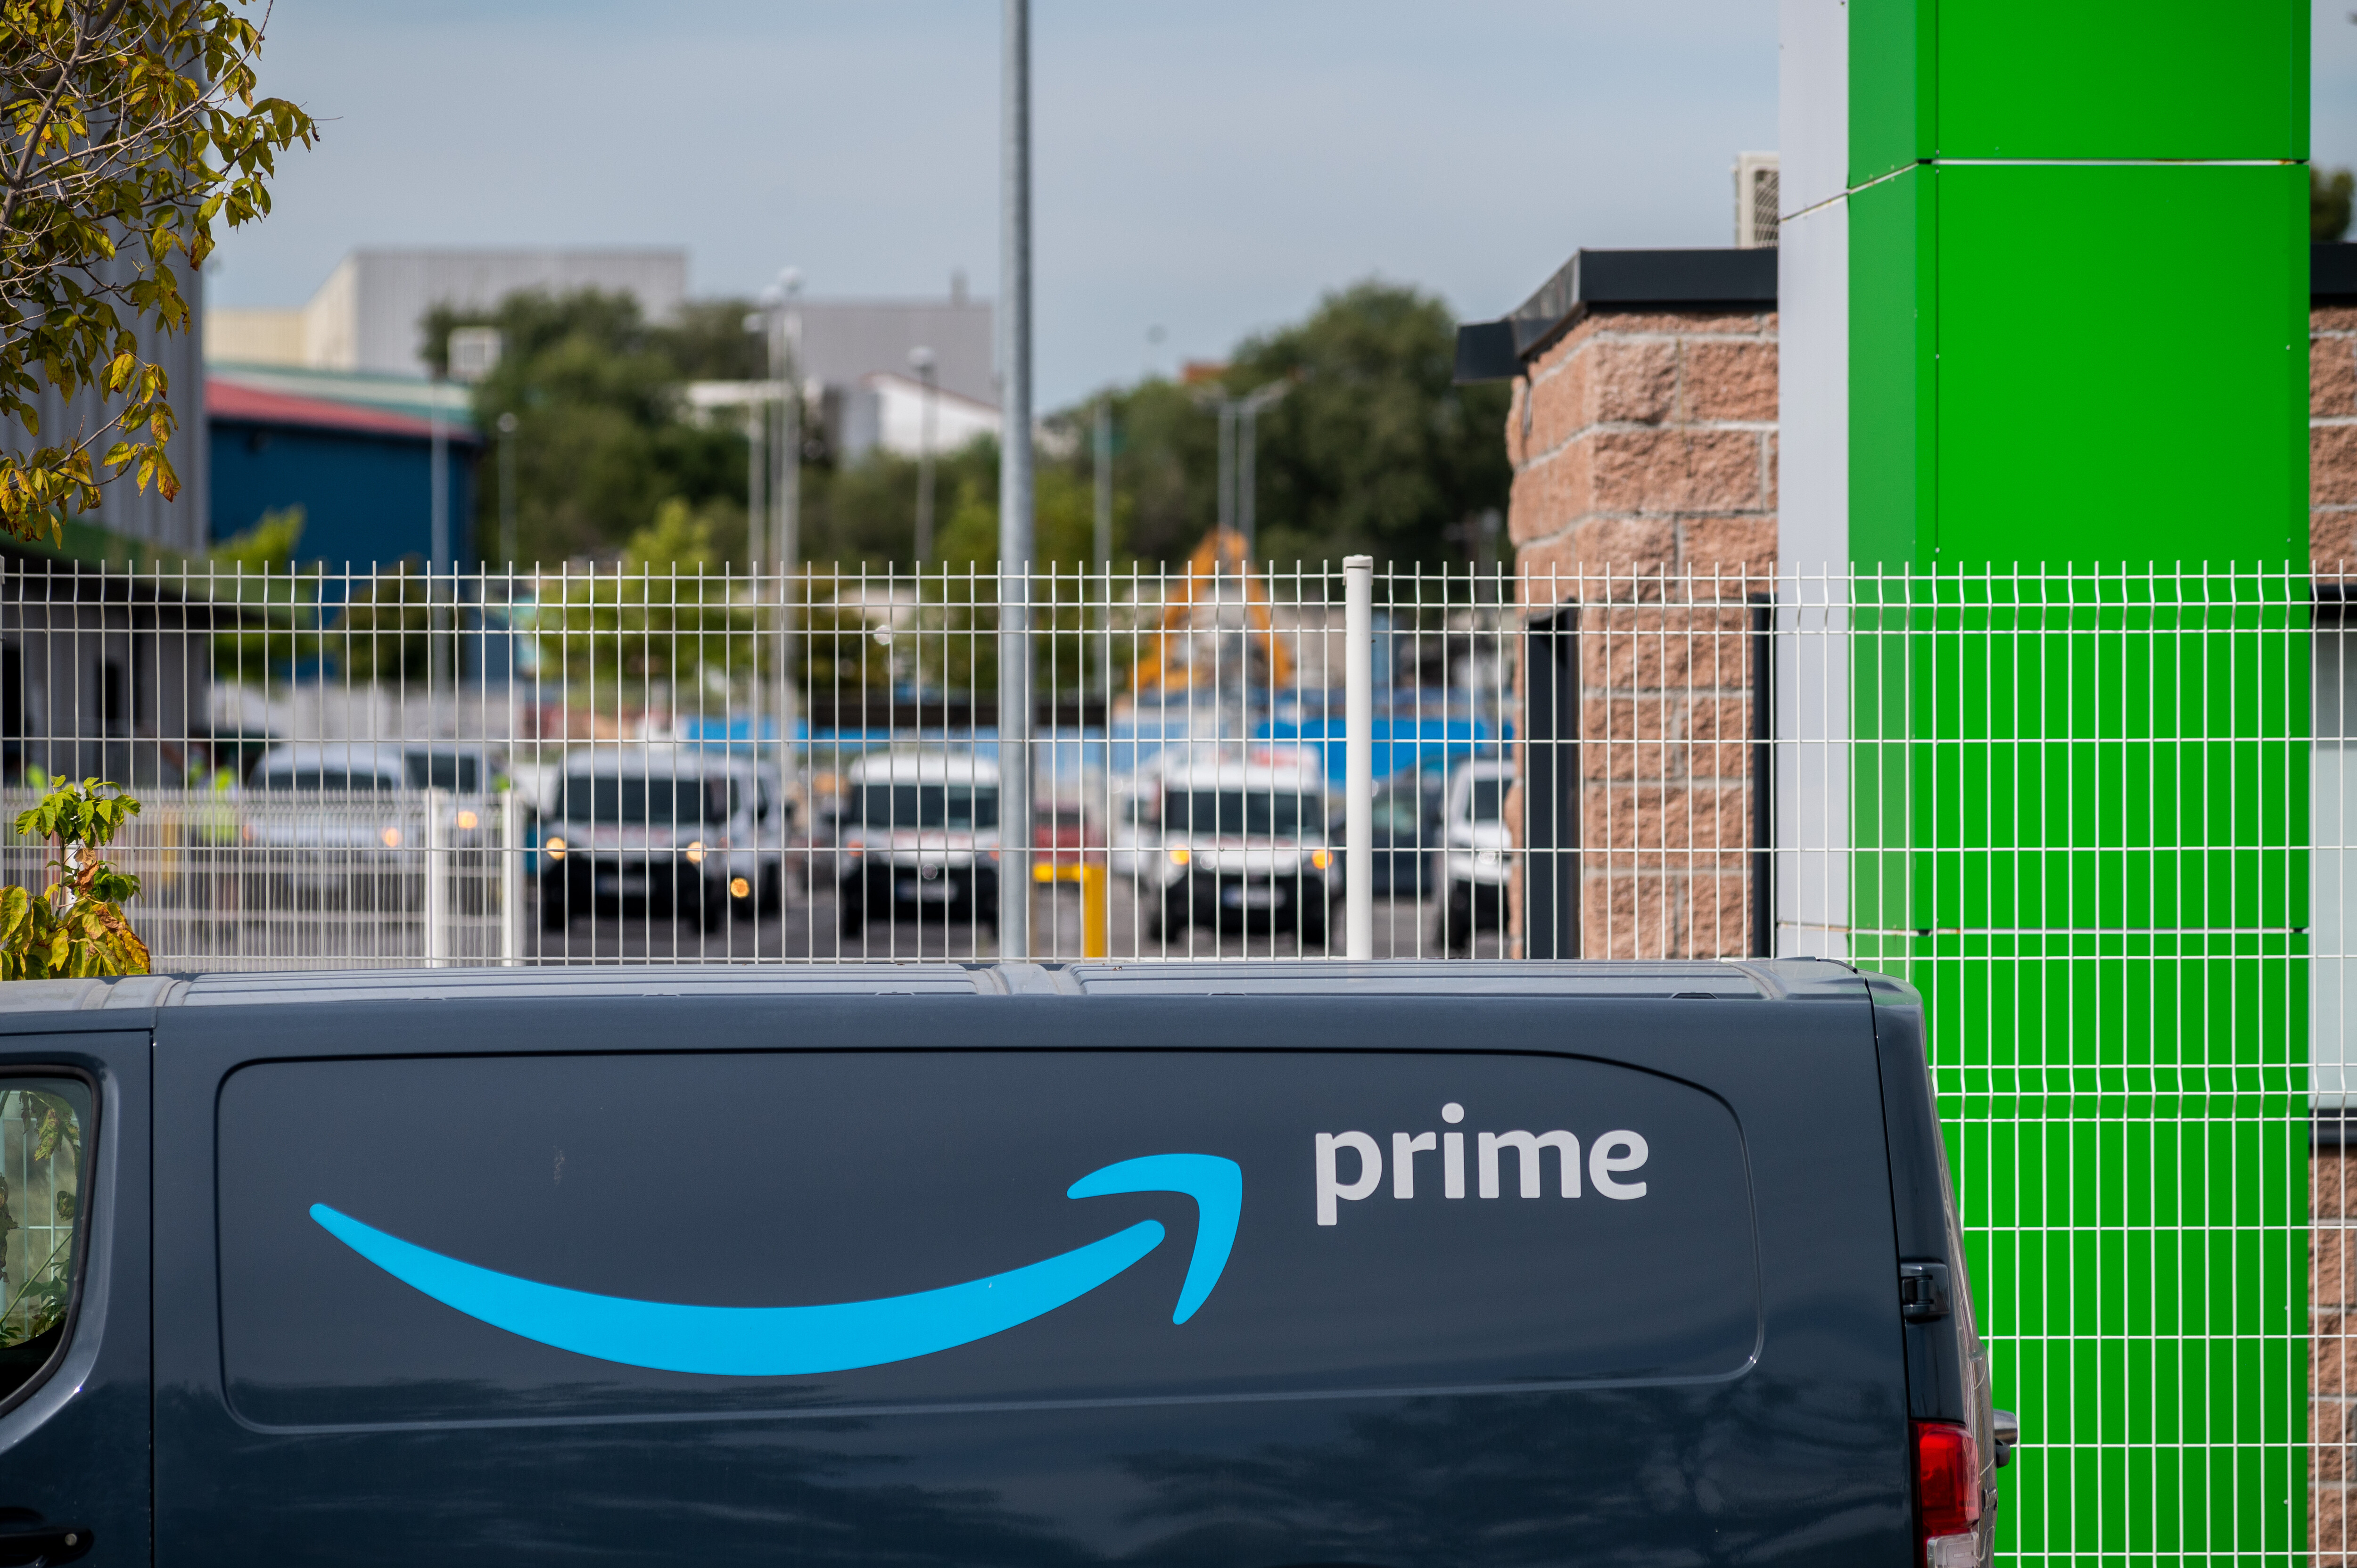 Amazon van with prime logo in a logistic centre. Amazon has...